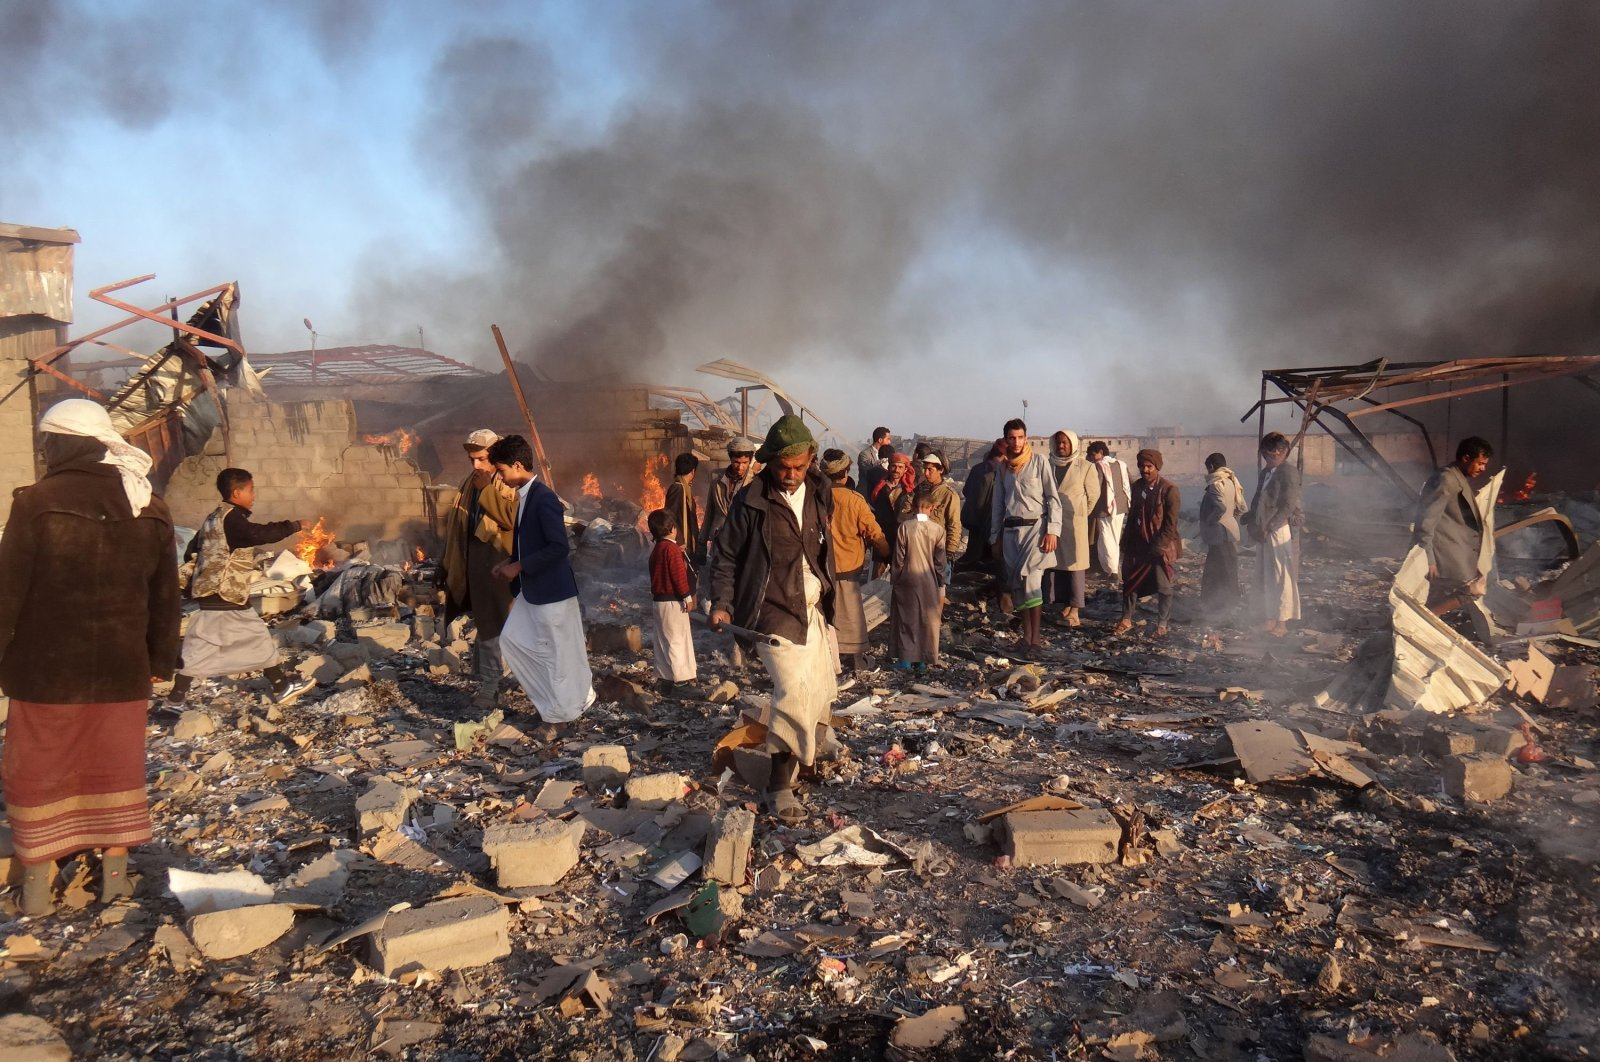 In this file photo, smoke rises as Yemenis inspect the damage at the site of airstrikes in the northwestern Houthi-held city of Saada, Yemen, Jan. 6, 2018. (AFP Photo)